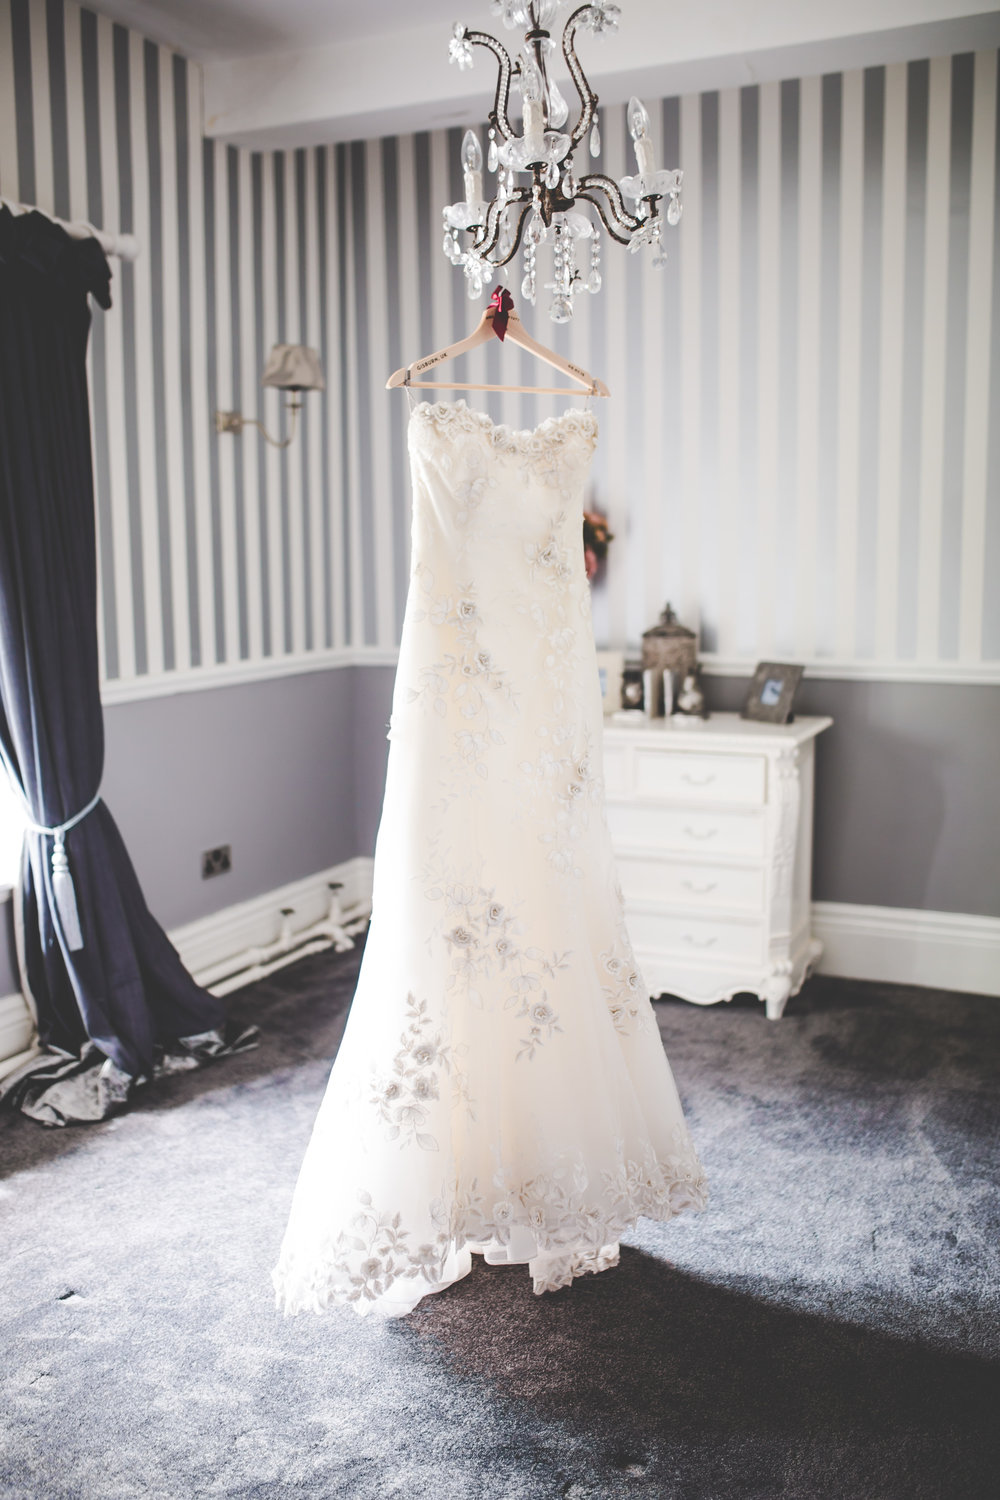 The brides dress hung up before the Lancashire wedding at Stirk House